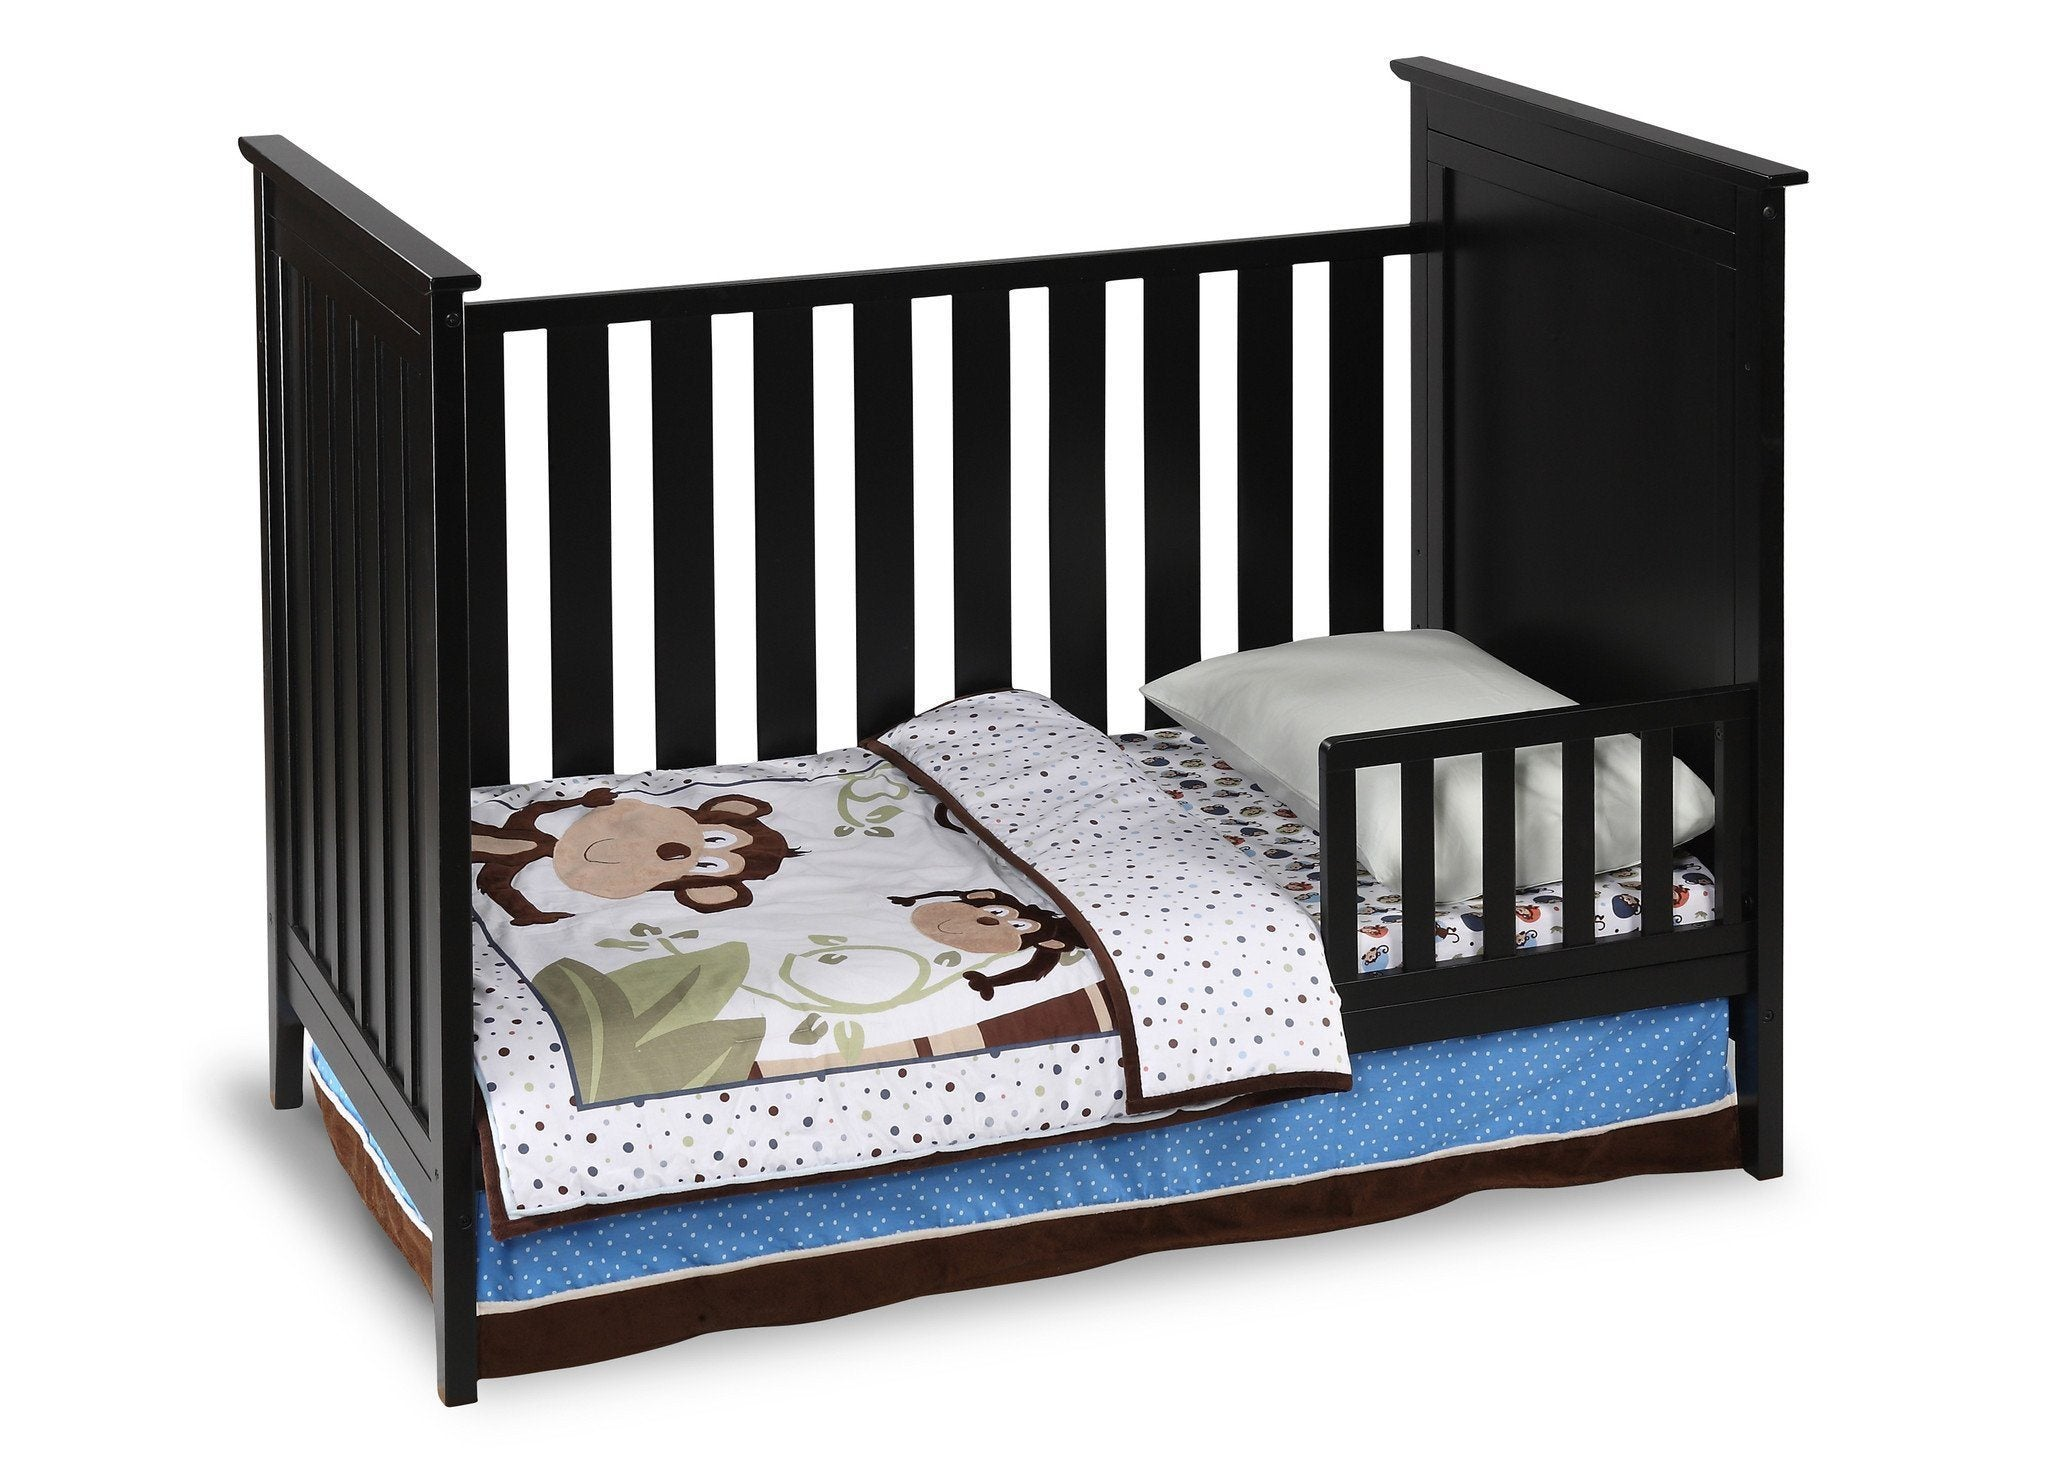 Simmons Kids Black (001) Melody 3-in-1 Crib, Toddler Bed Conversion a2a